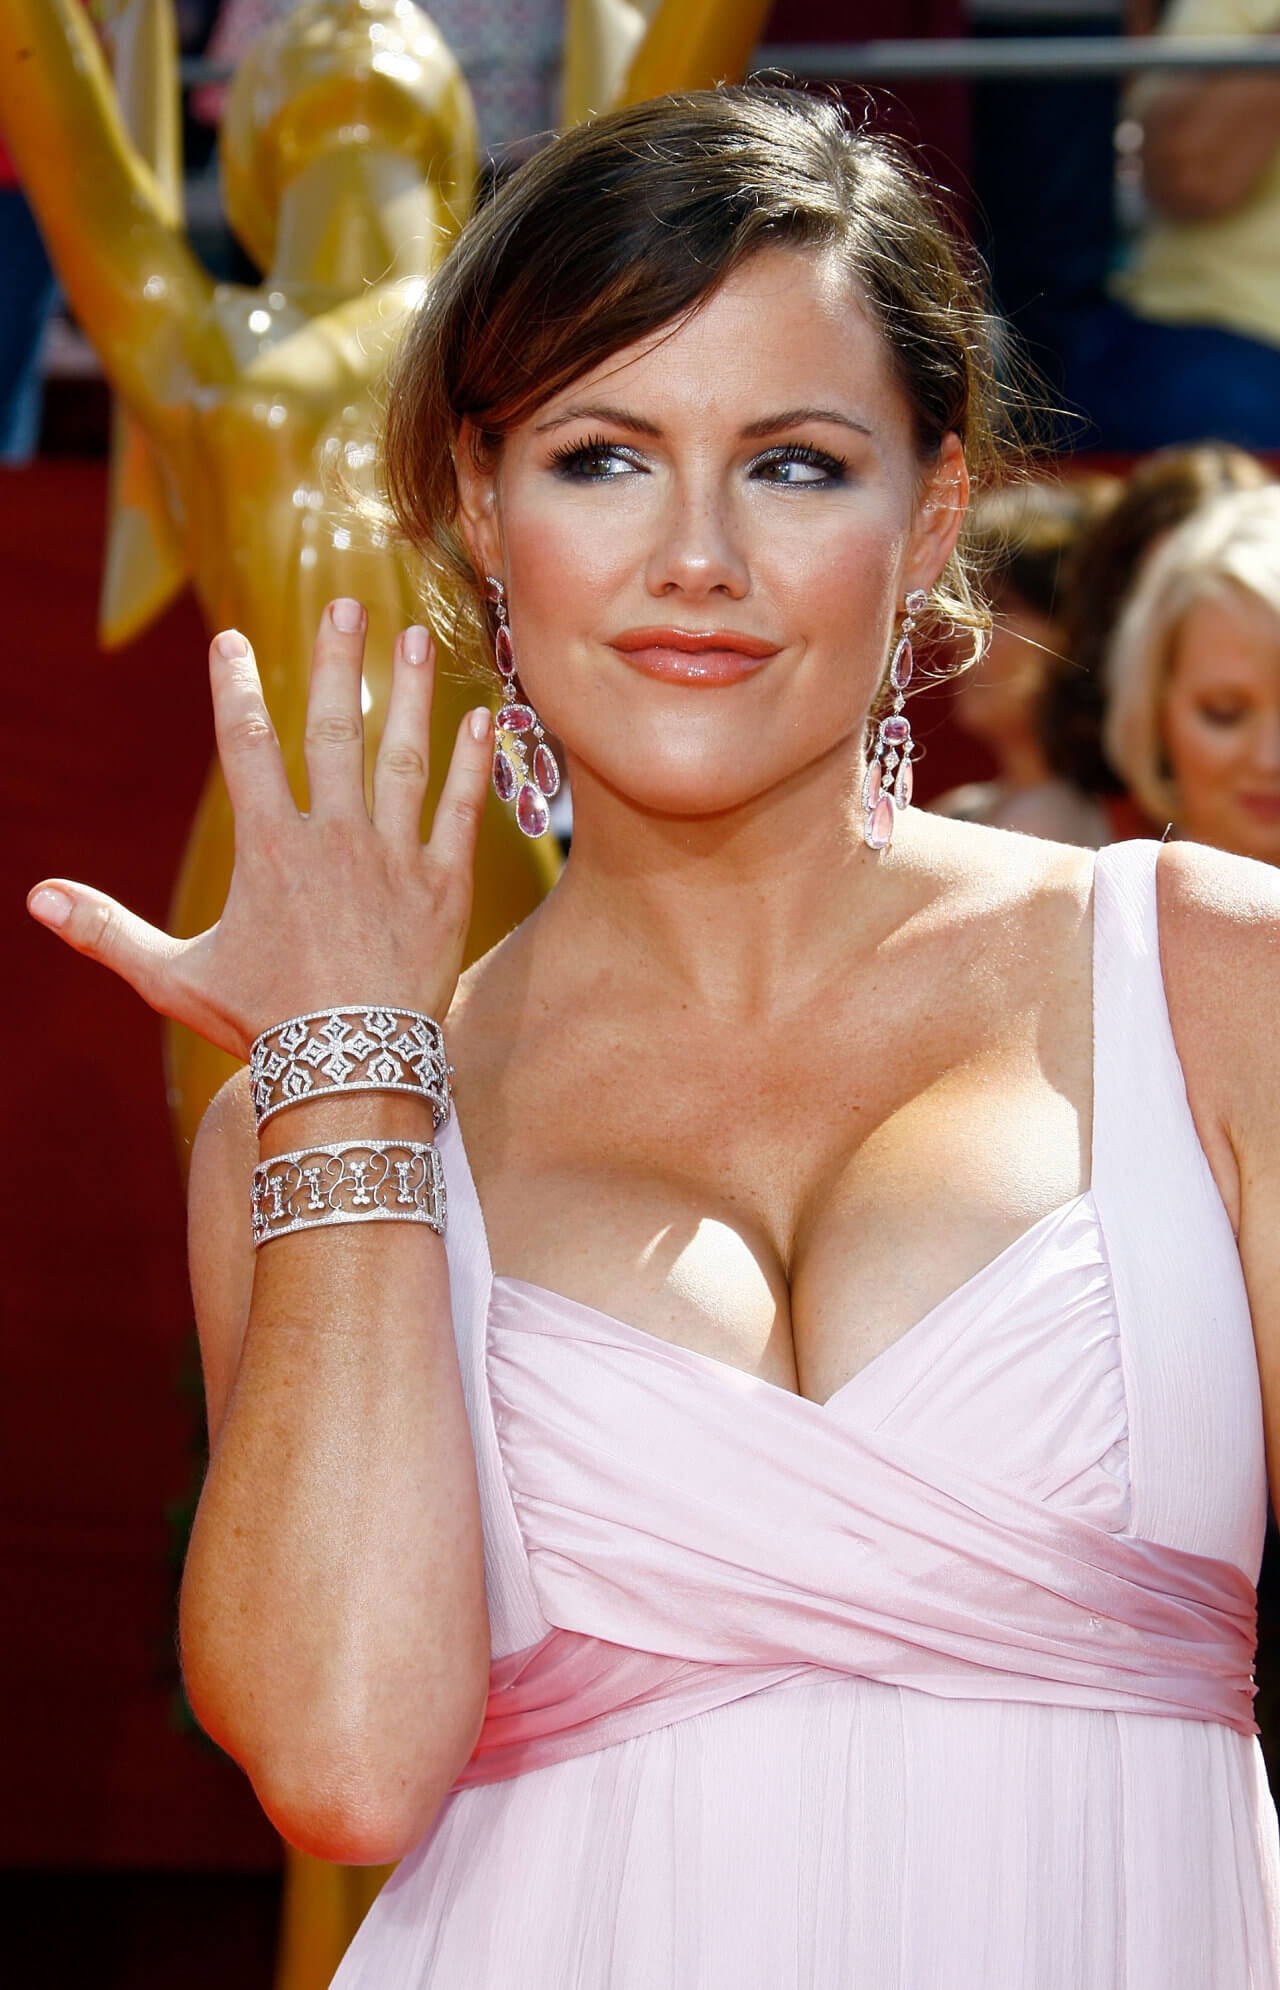 52 Hot Pictures Of Kathleen Robertson Are Going To Cheer